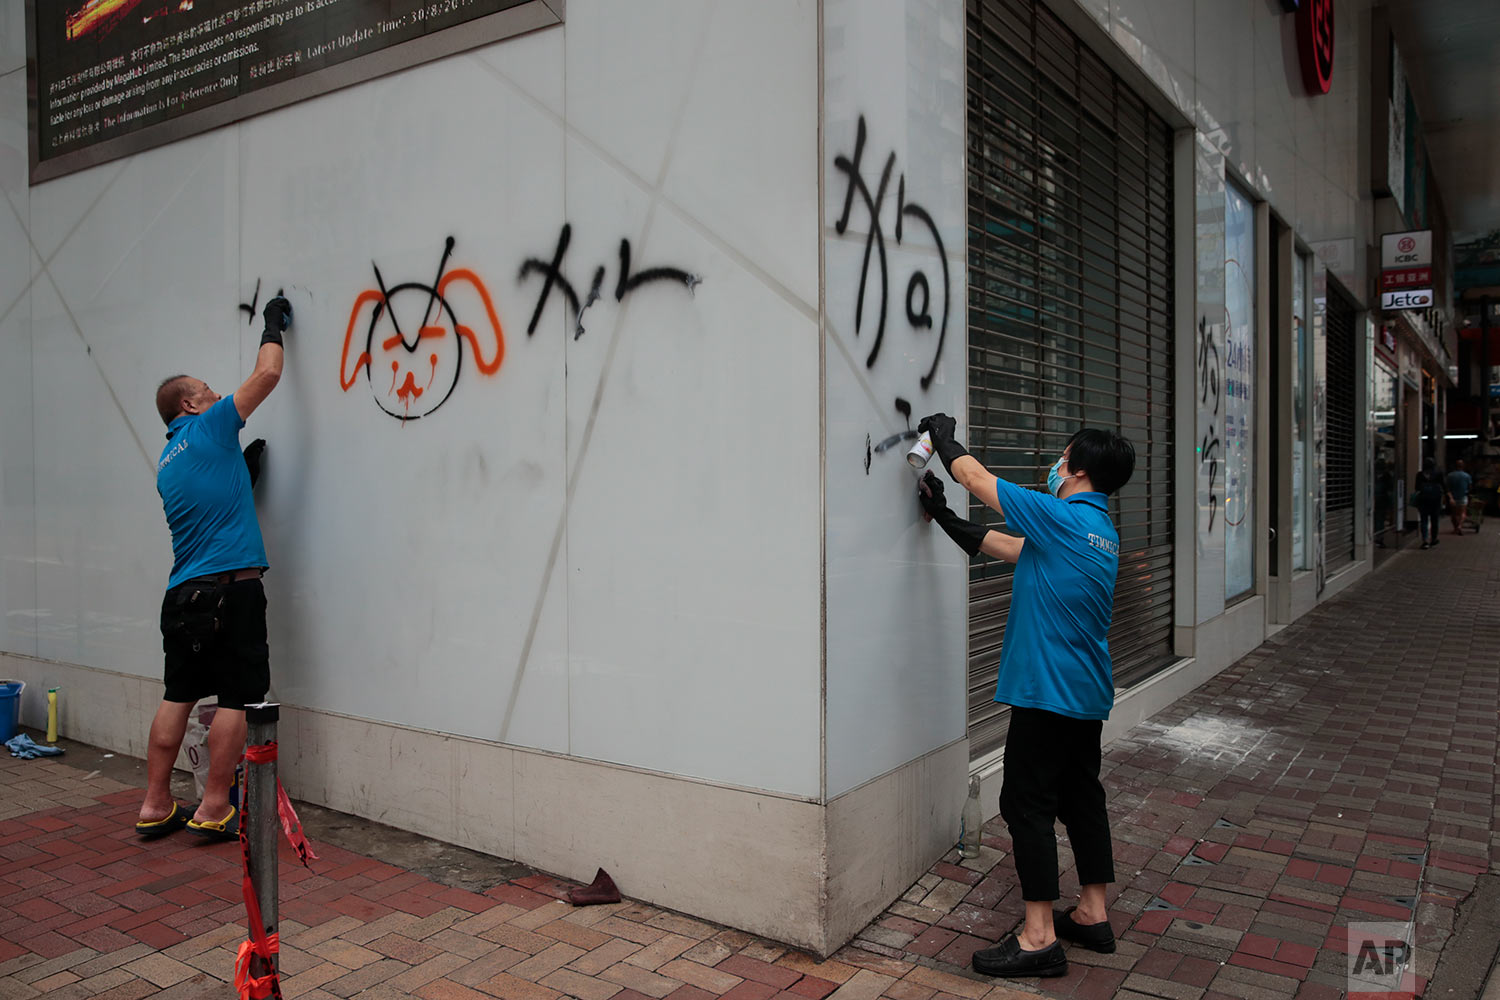 Workers remove graffiti left by protesters during a protest the night before in Hong Kong, Sept. 1, 2019. (AP Photo/Jae C. Hong)